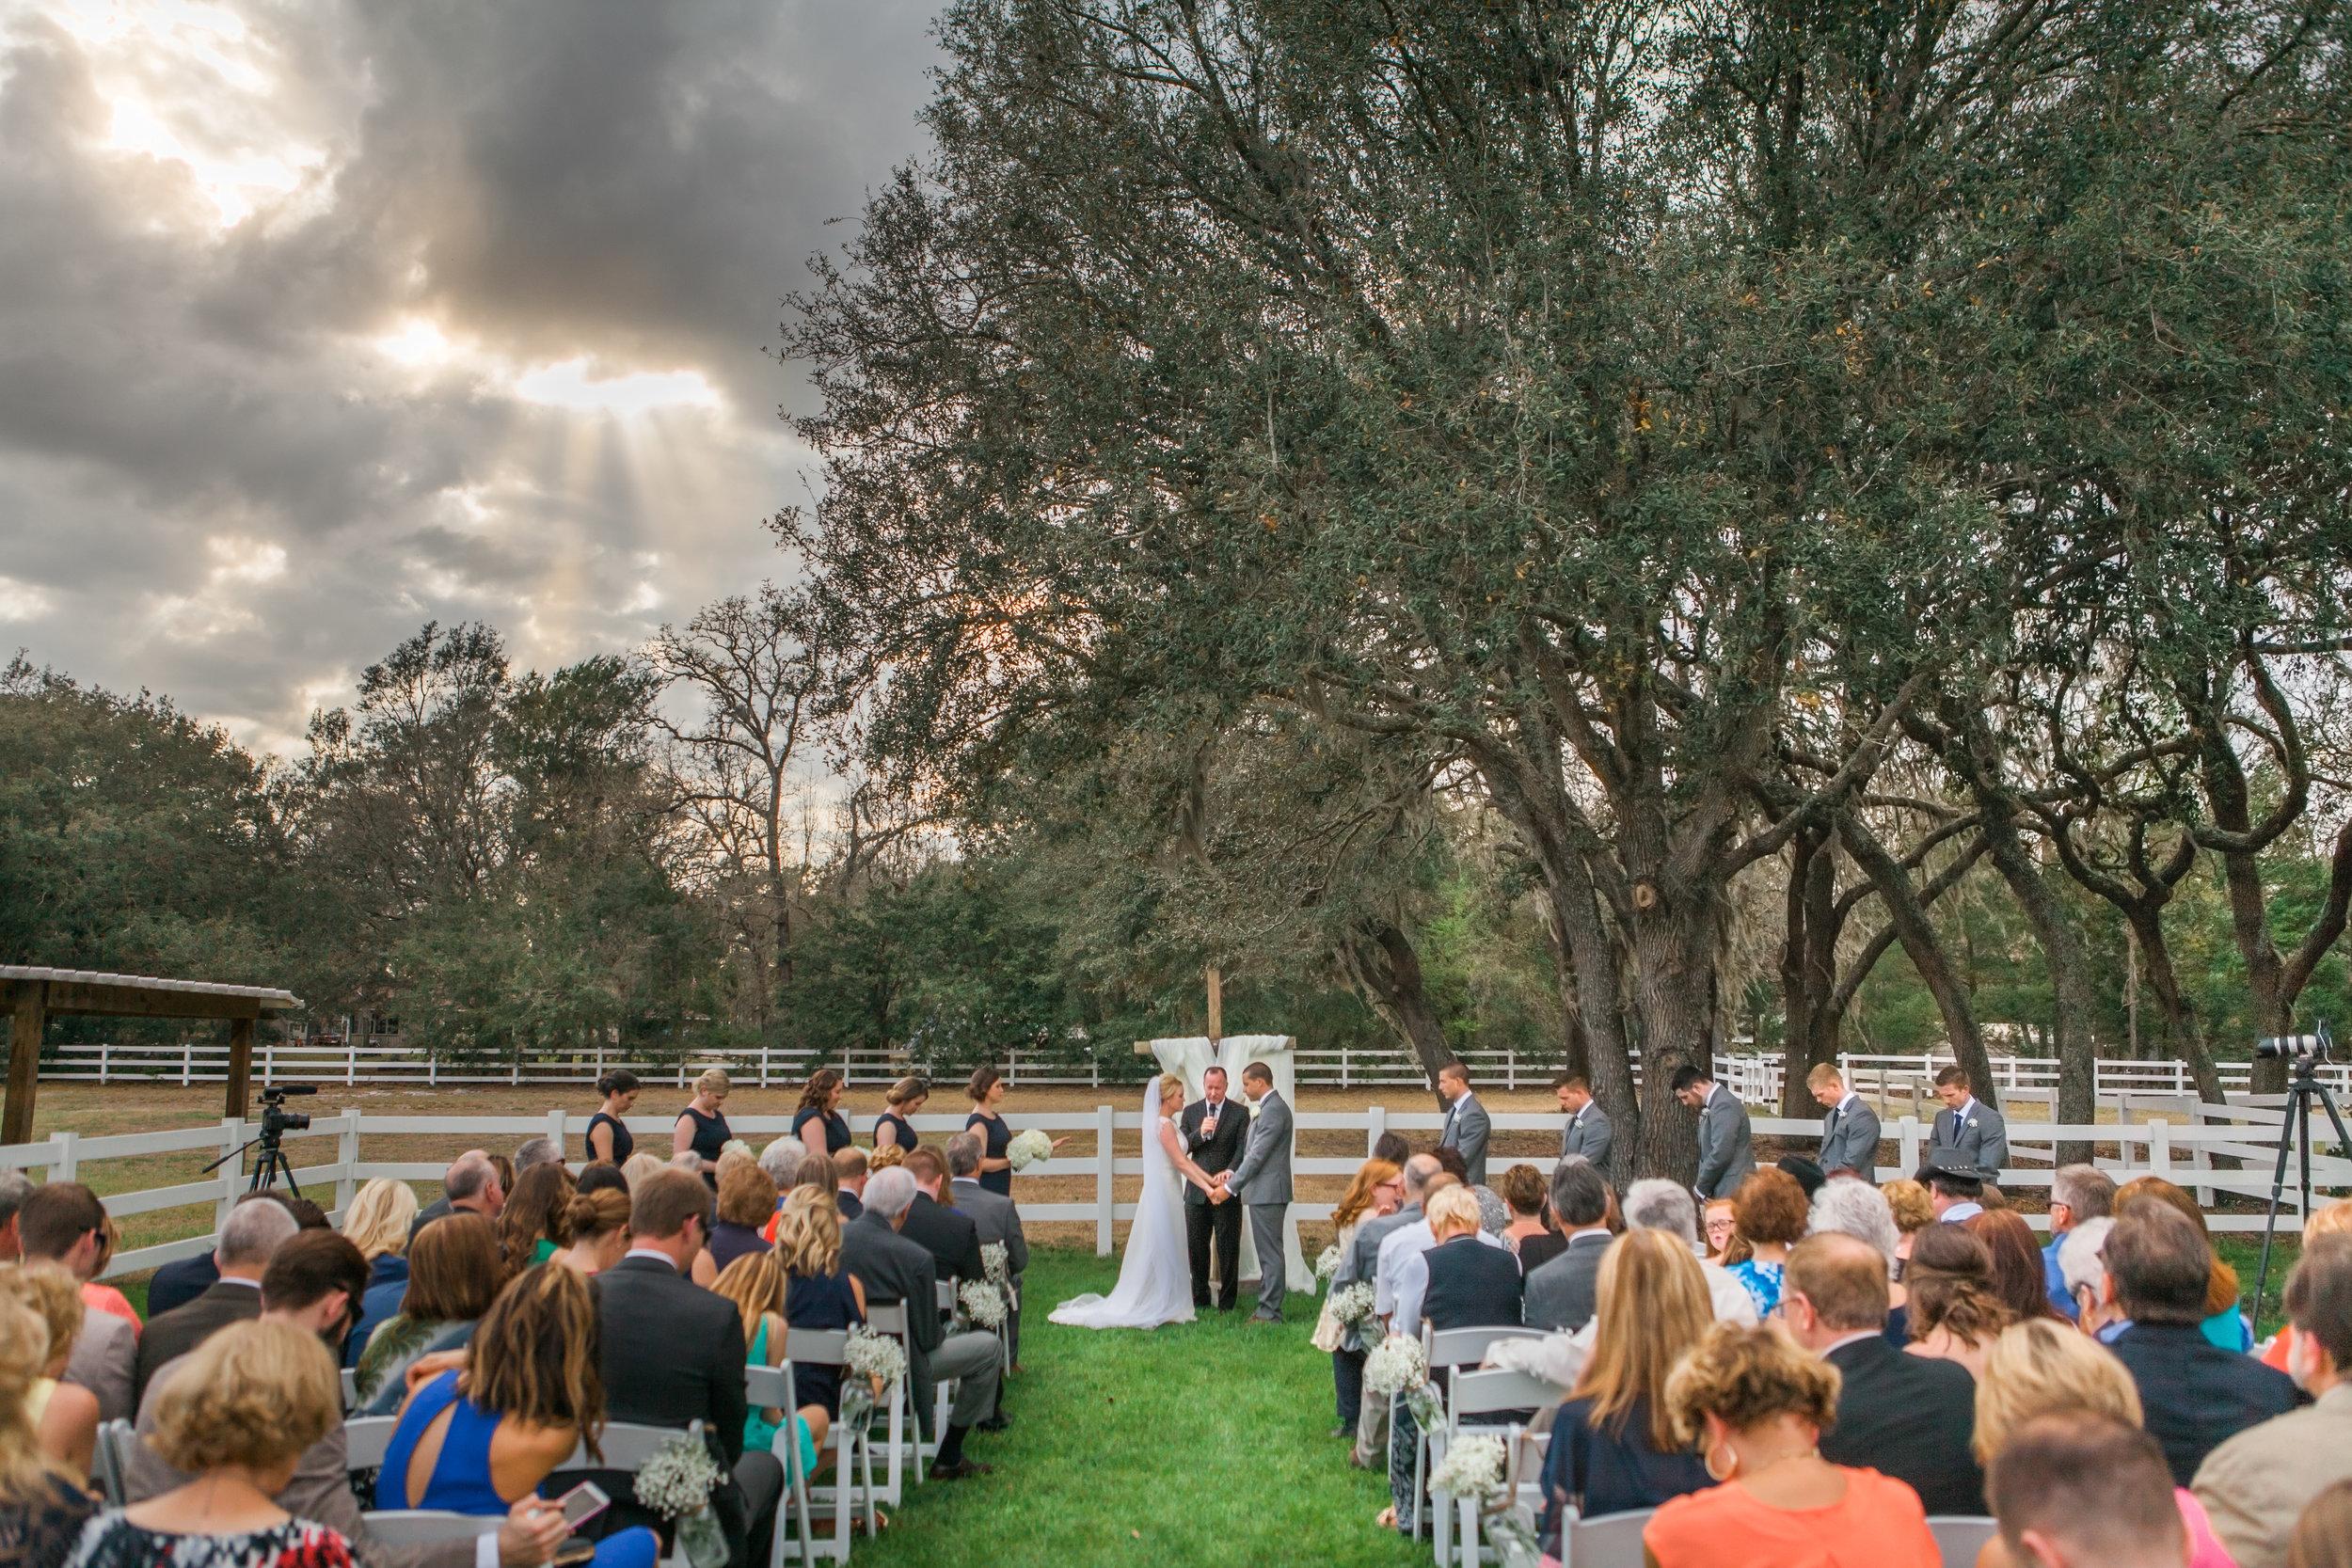 Sean & Claire's rustic Bramble Tree Estate wedding ceremony on the green lawn next to some lovely live oak trees.